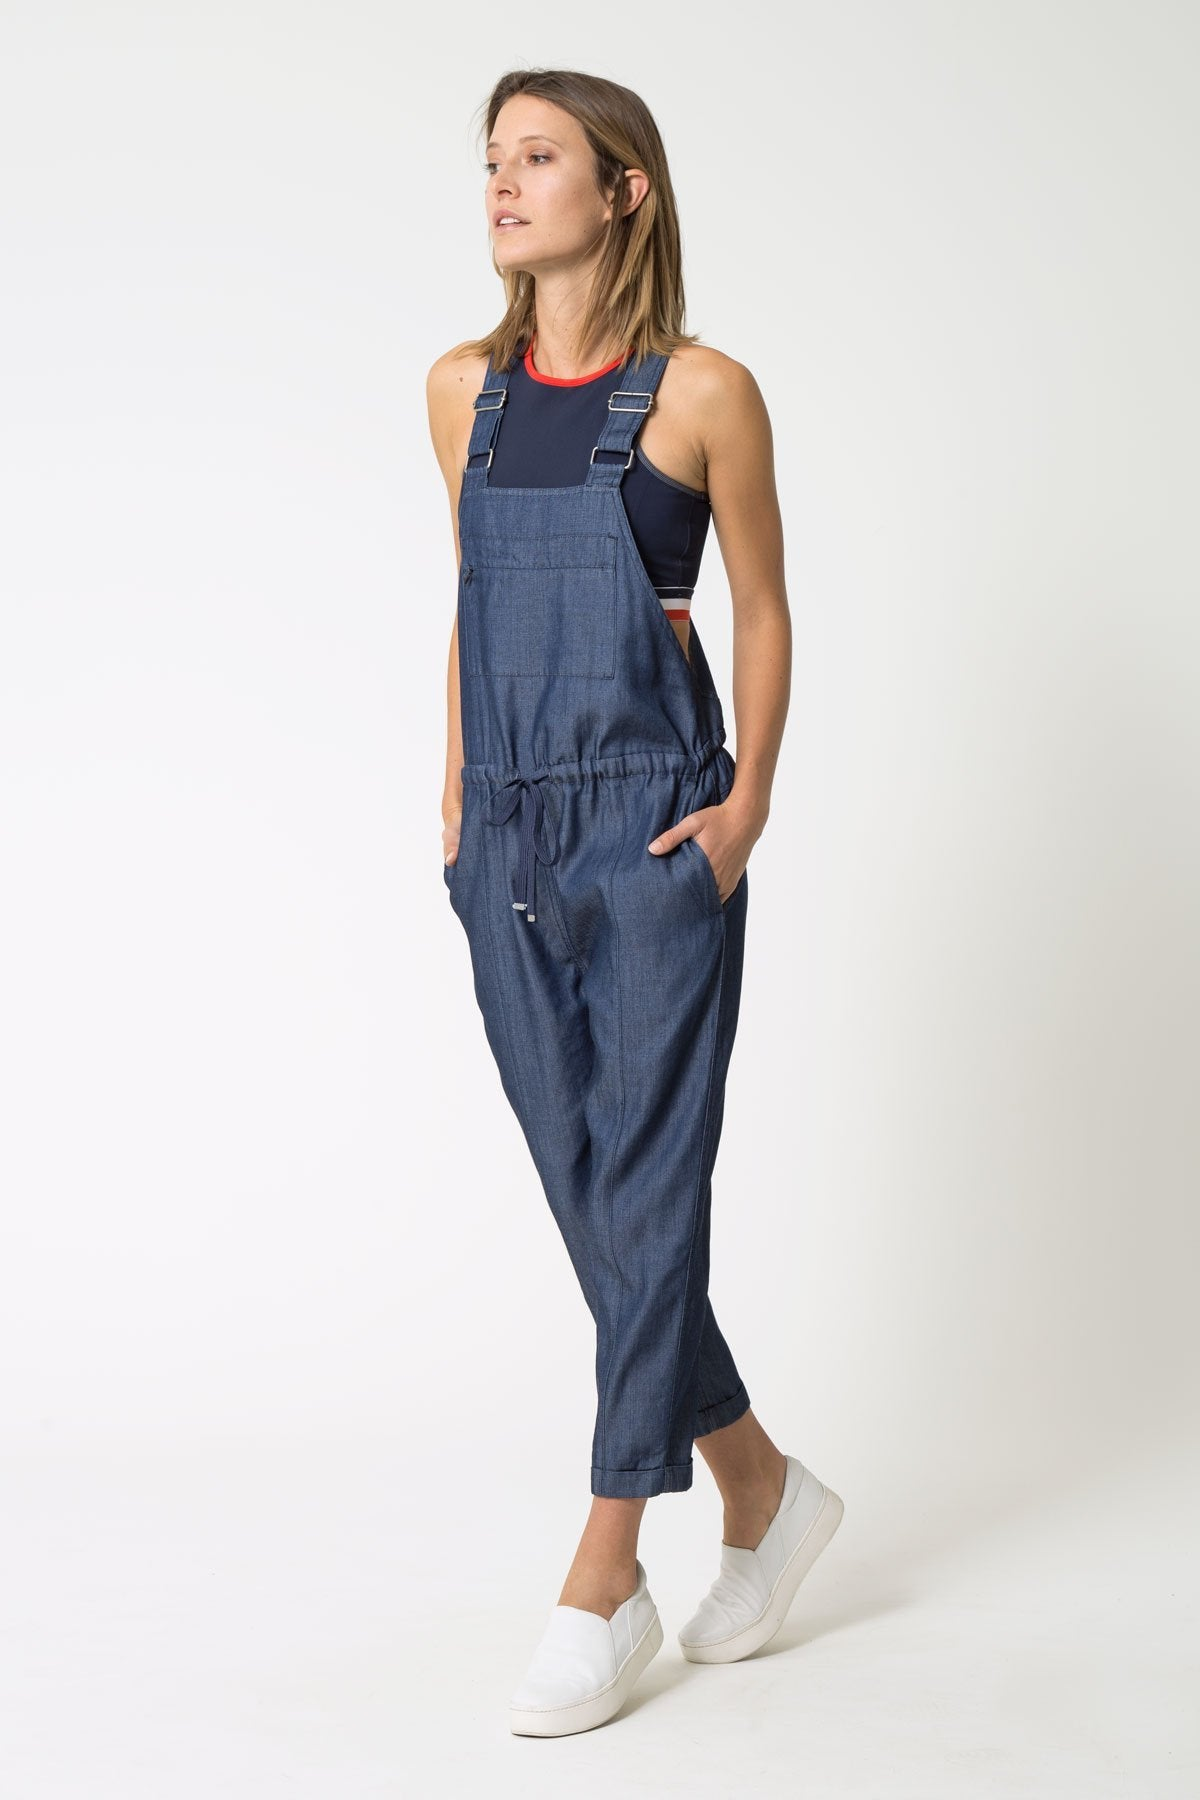 abf74fdeea2f Folklore Chambray Overall · Folklore Chambray Overall ...